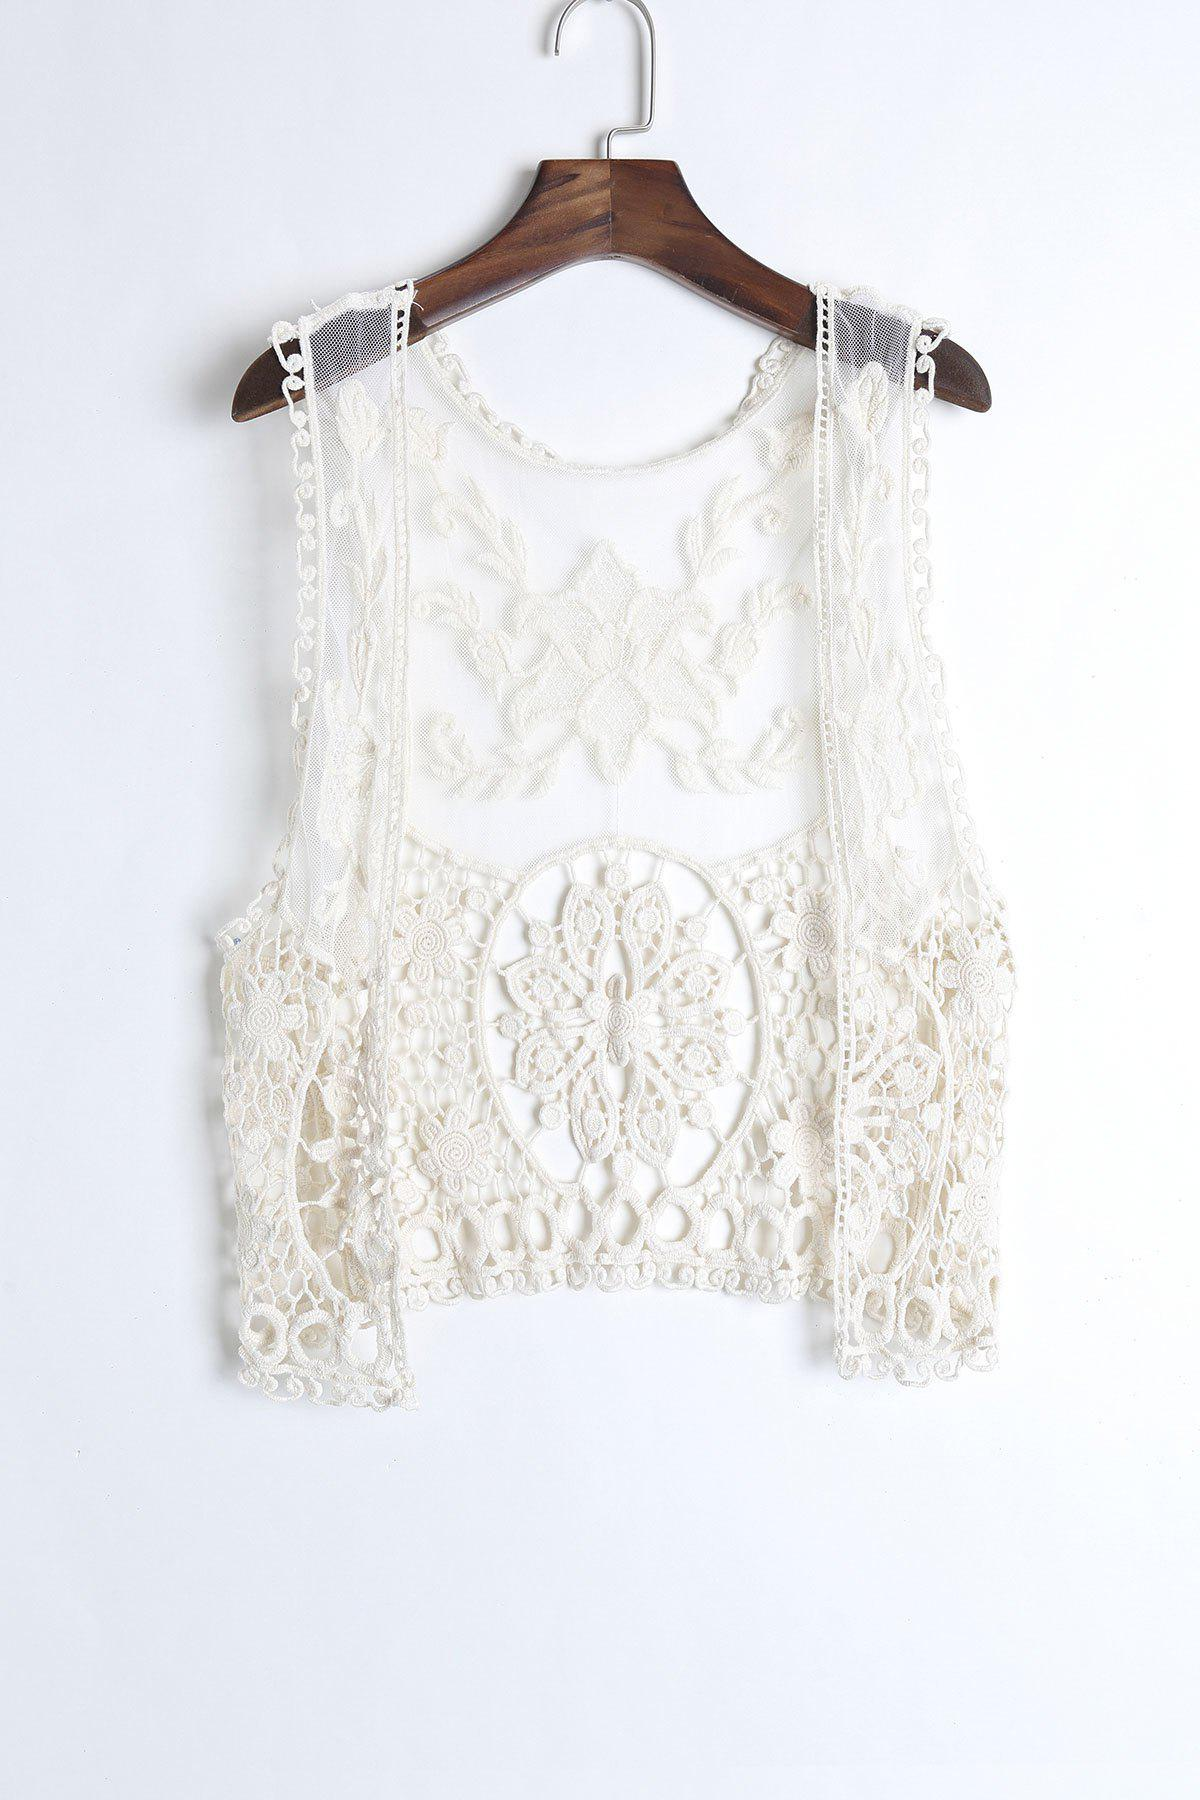 Bohemian Embroidered Sleeveless Solid Color Women's Tank Top - OFF WHITE ONE SIZE(FIT SIZE XS TO M)